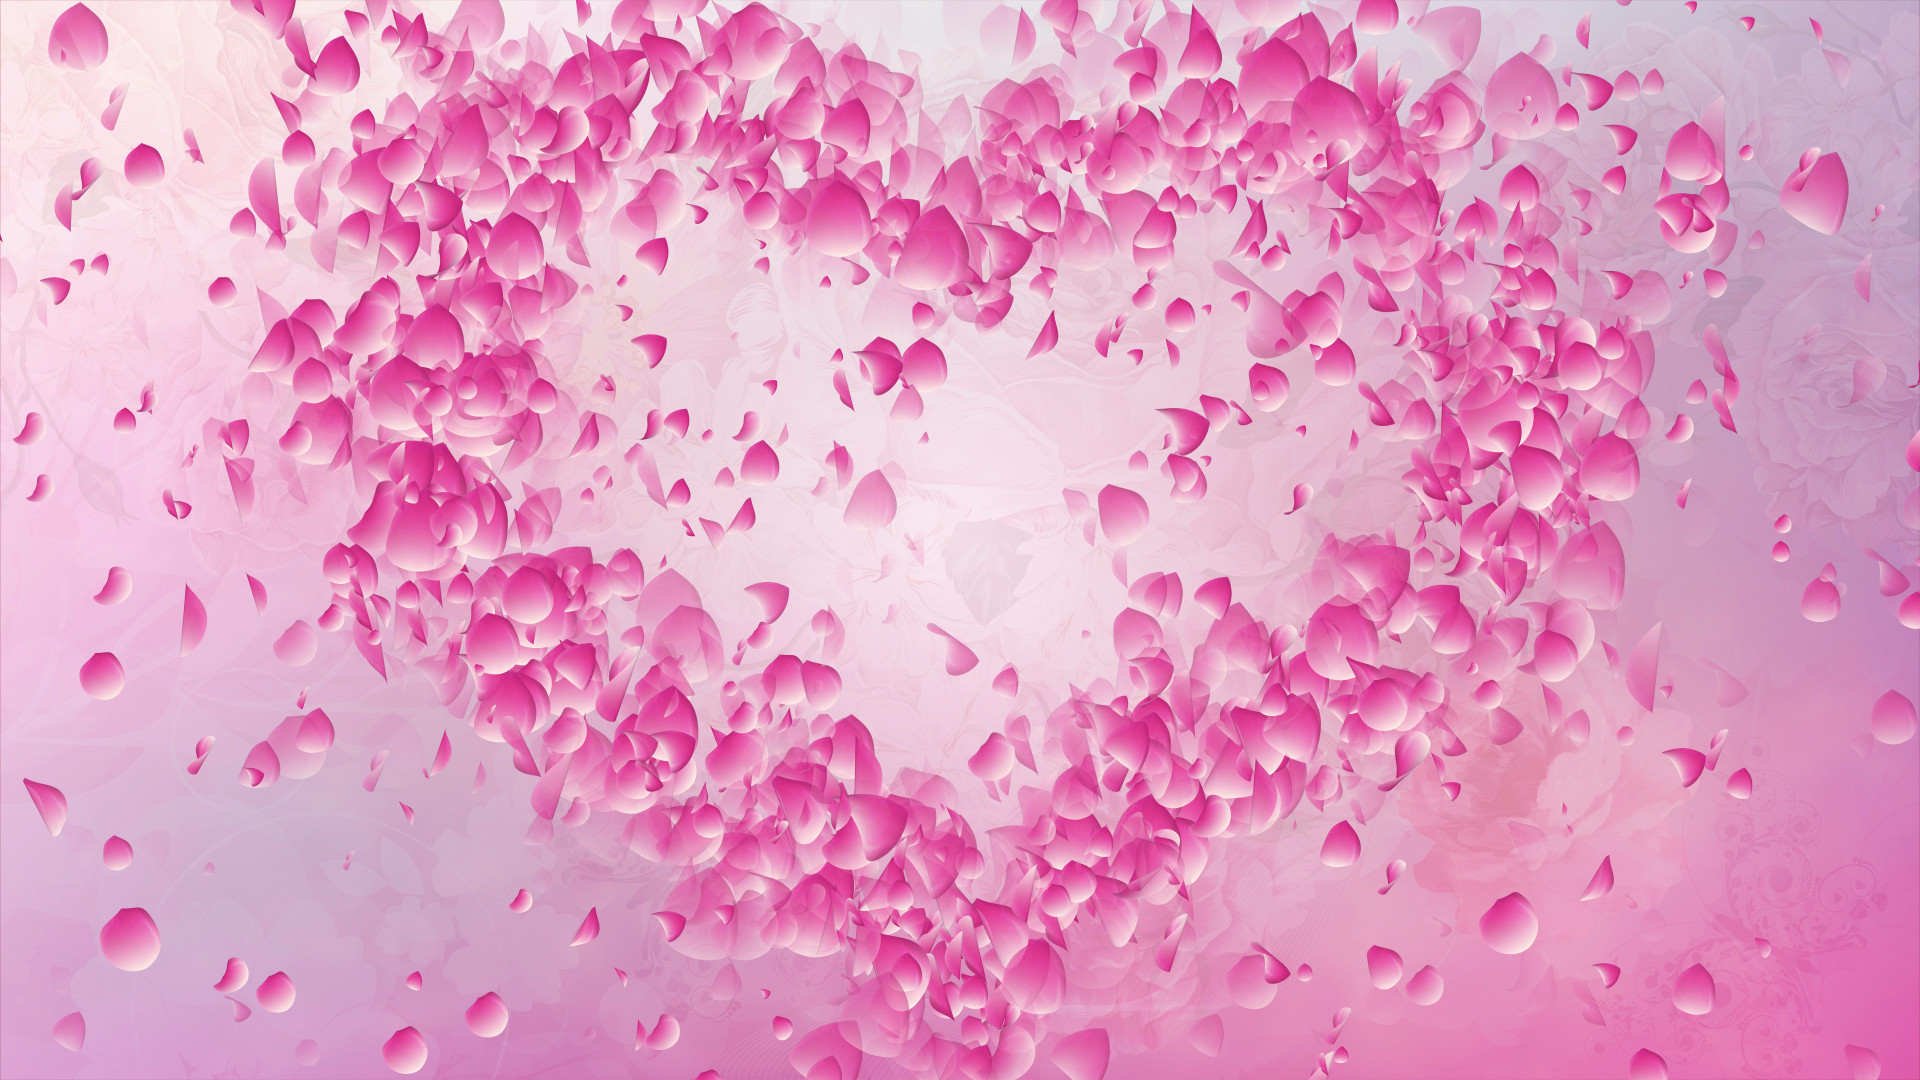 Heart Love Flying Petals - Motion Graphics 84187 - Free download